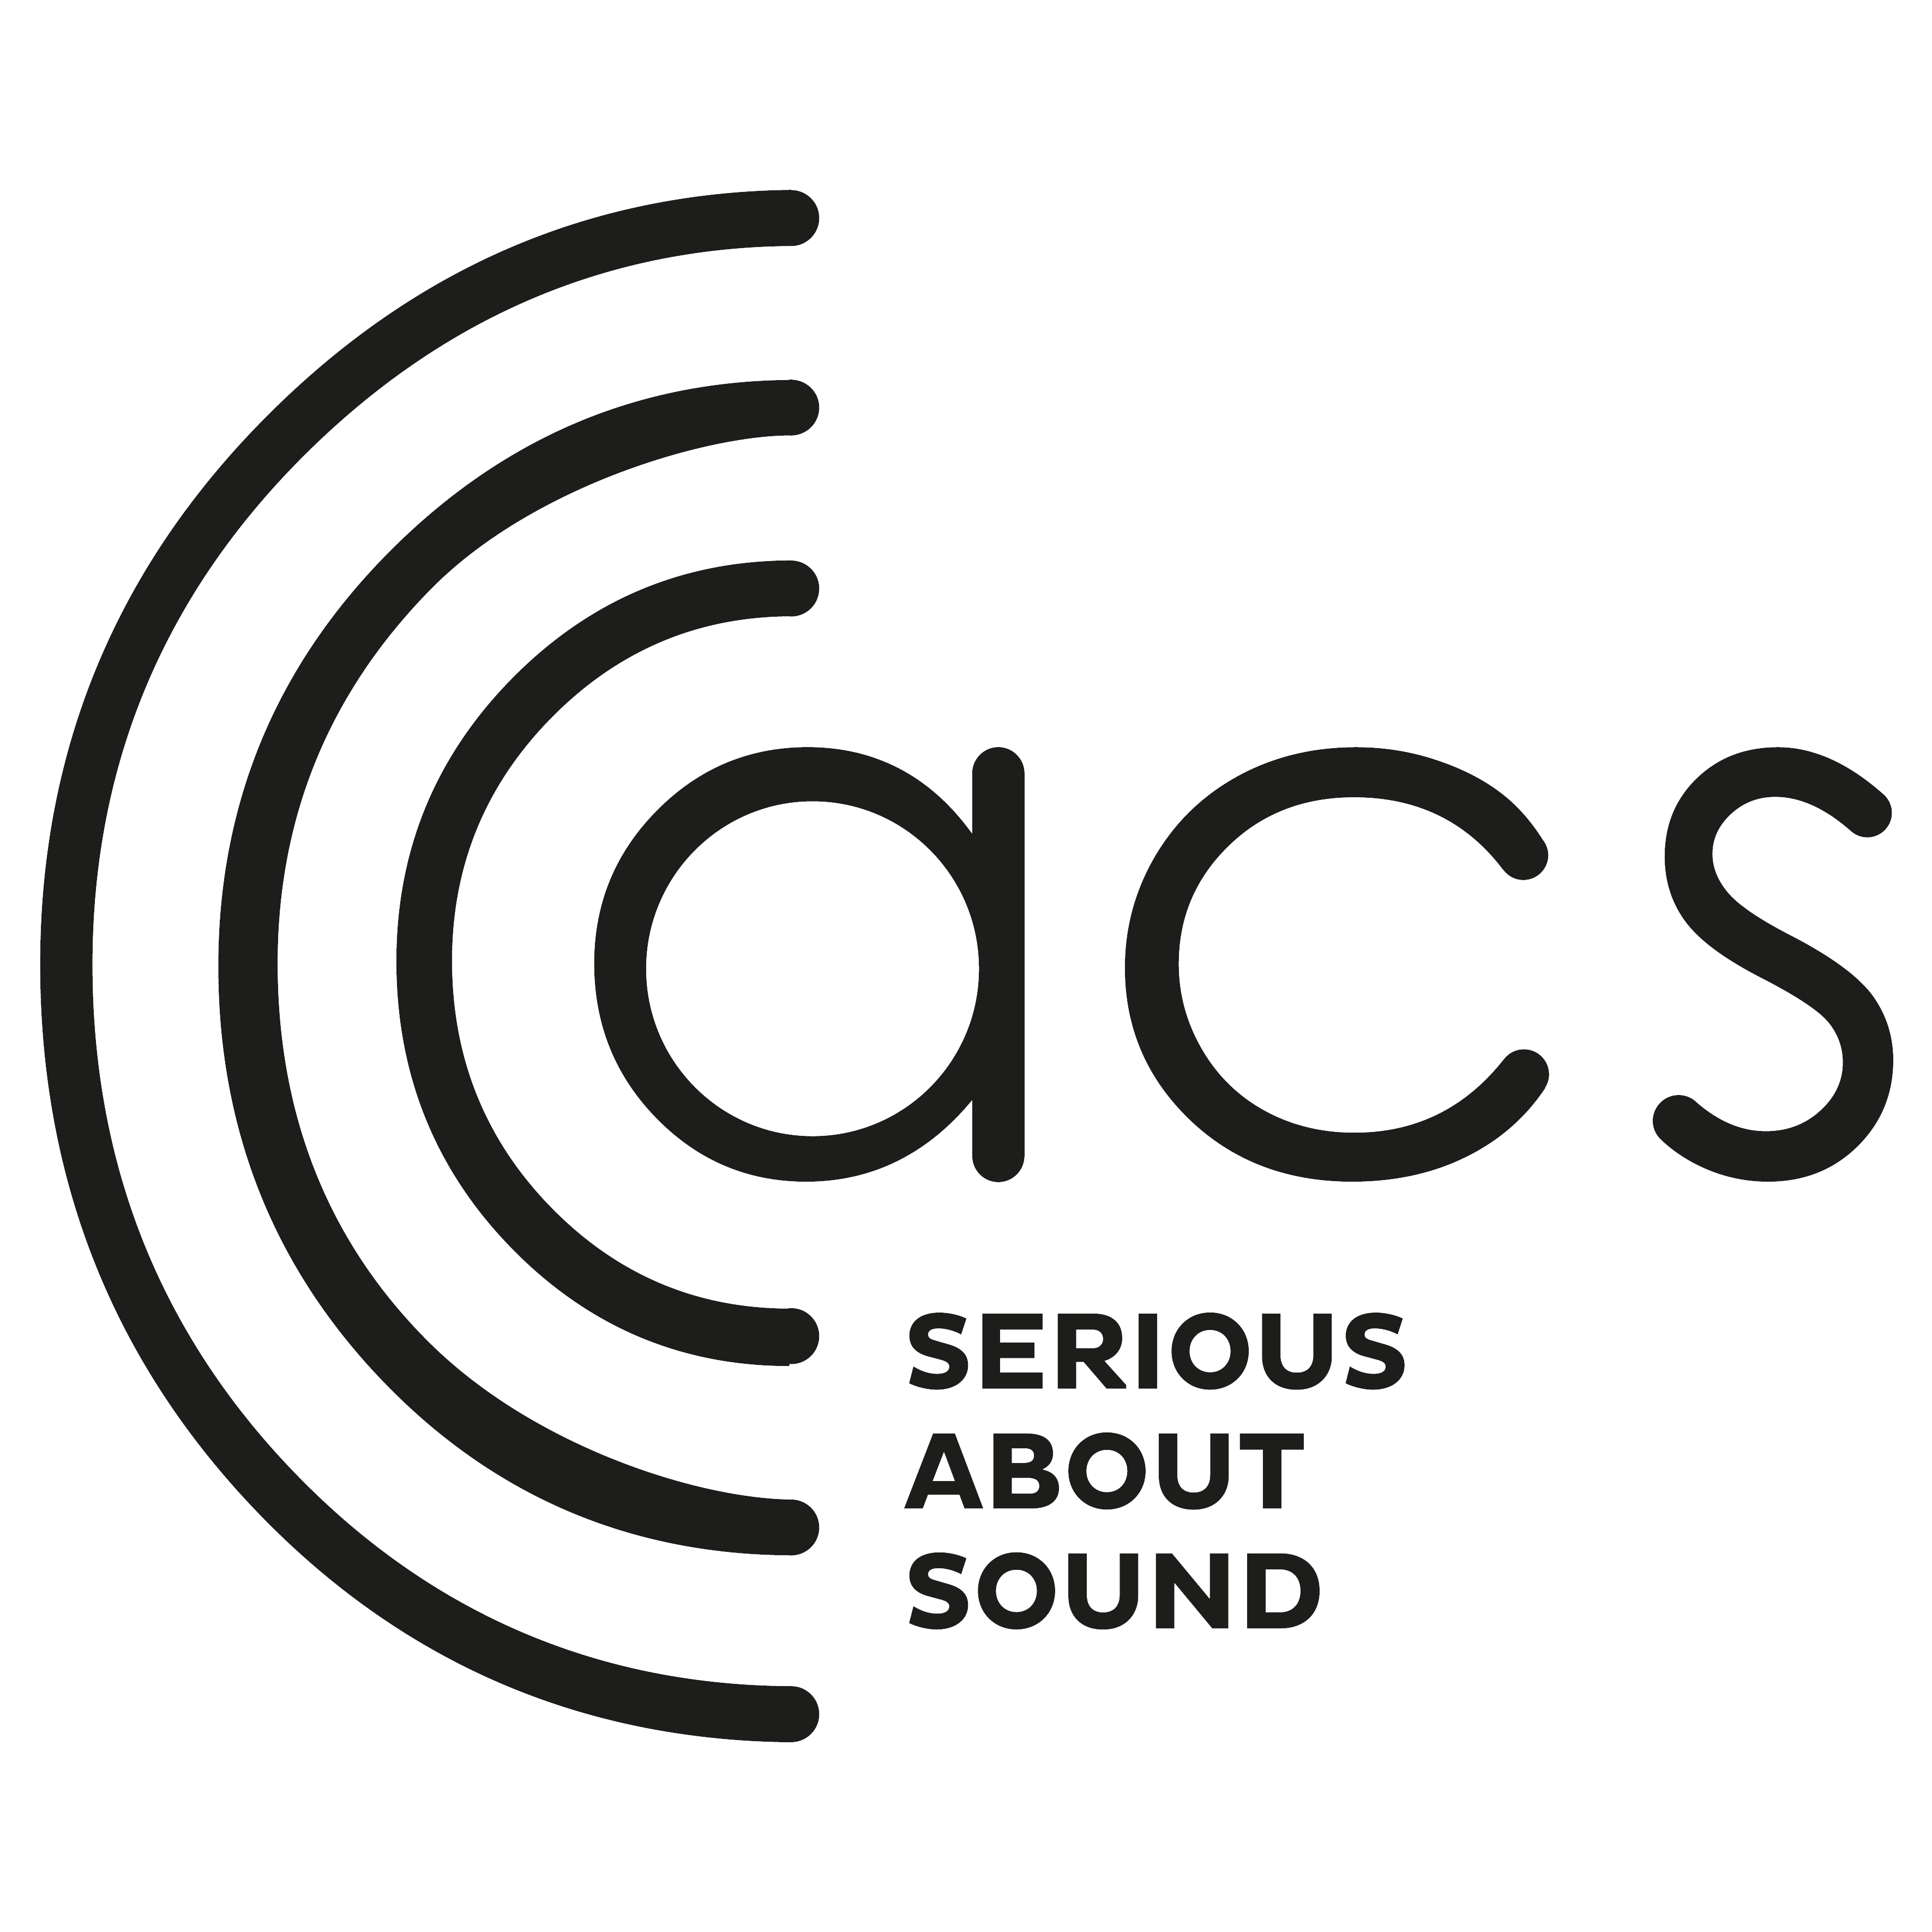 Protecting hearing with ACS